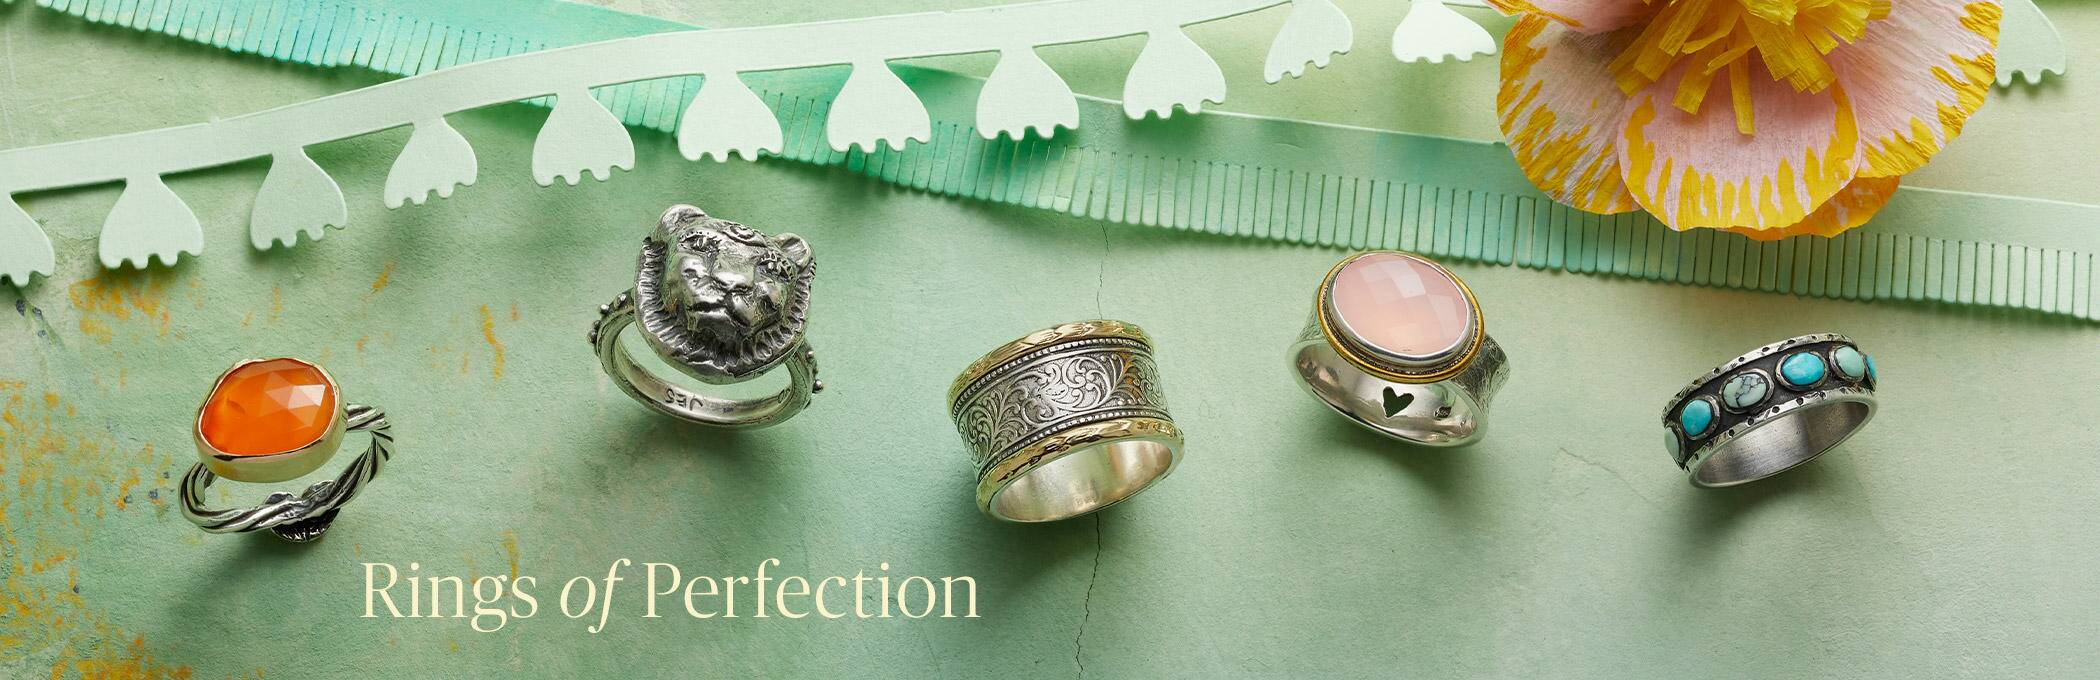 Rings of Perfection